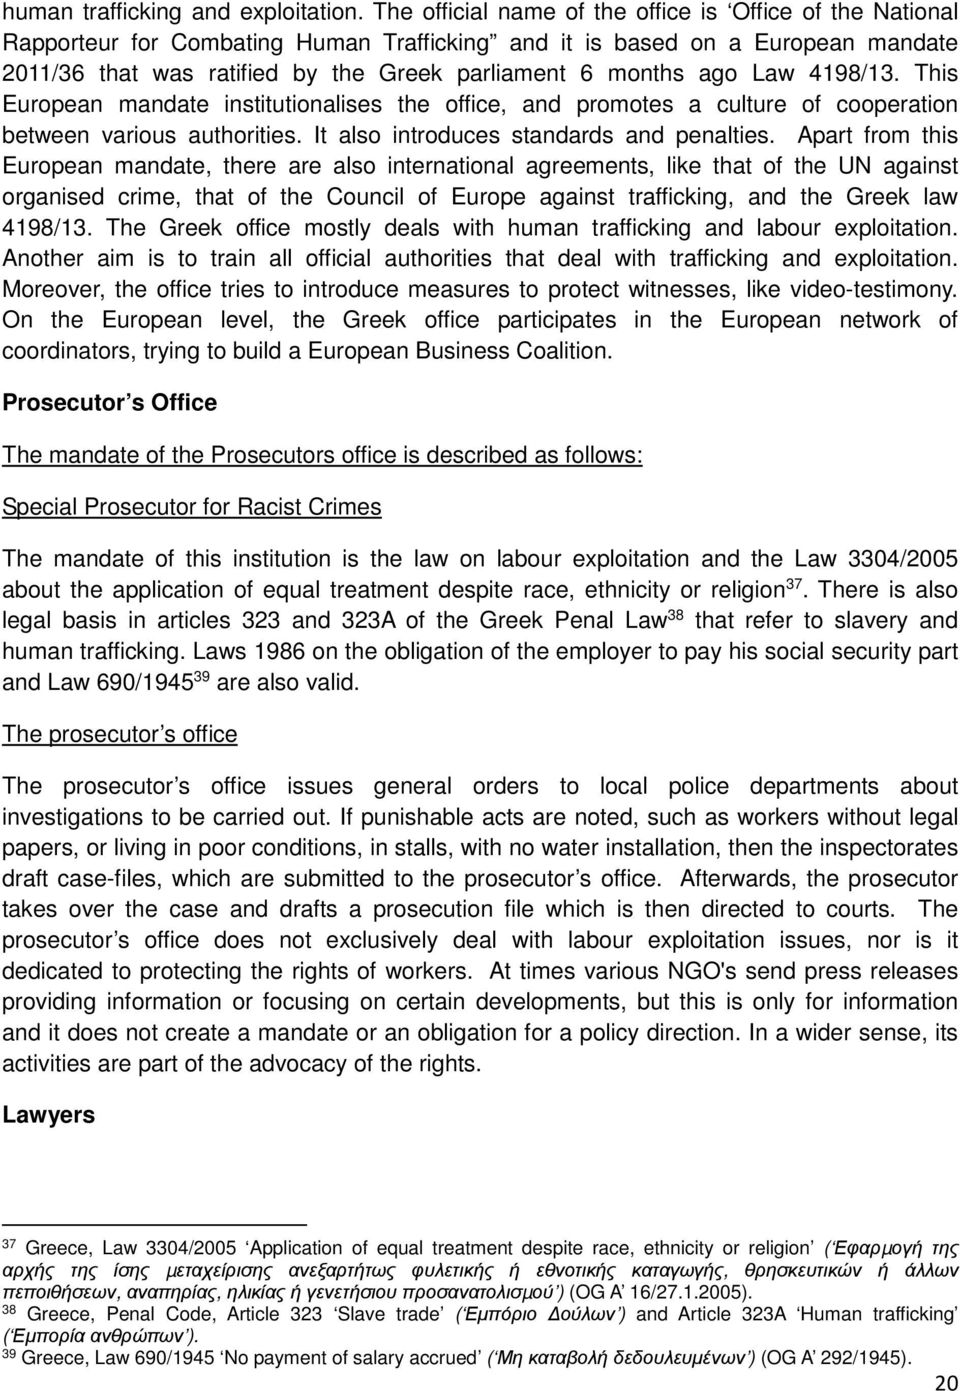 ago Law 4198/13. This European mandate institutionalises the office, and promotes a culture of cooperation between various authorities. It also introduces standards and penalties.